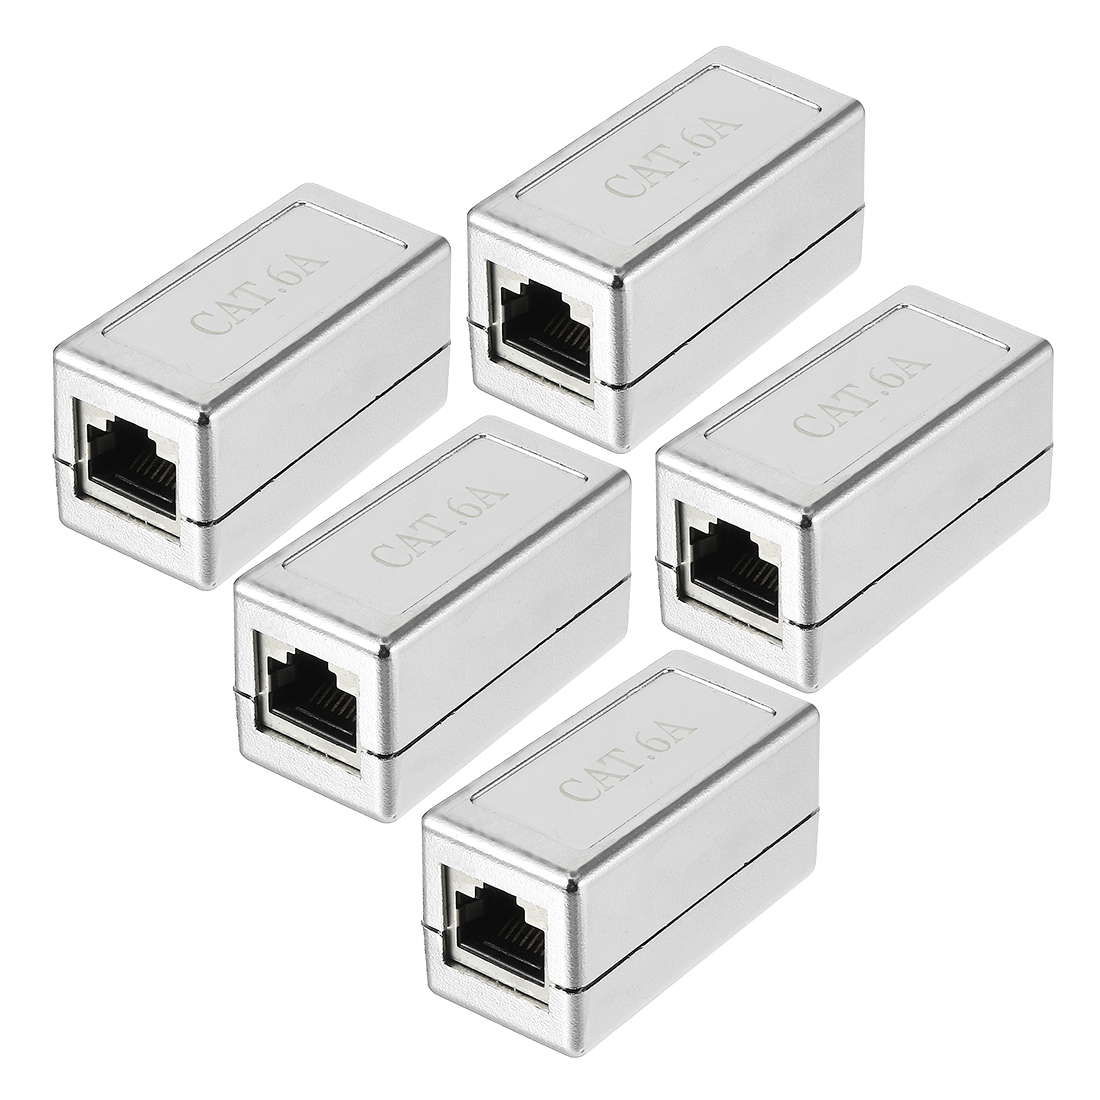 RJ45 Coupler Connectors Cat 6A Keystone Jacks Couplers Extending Cables 5 Pack